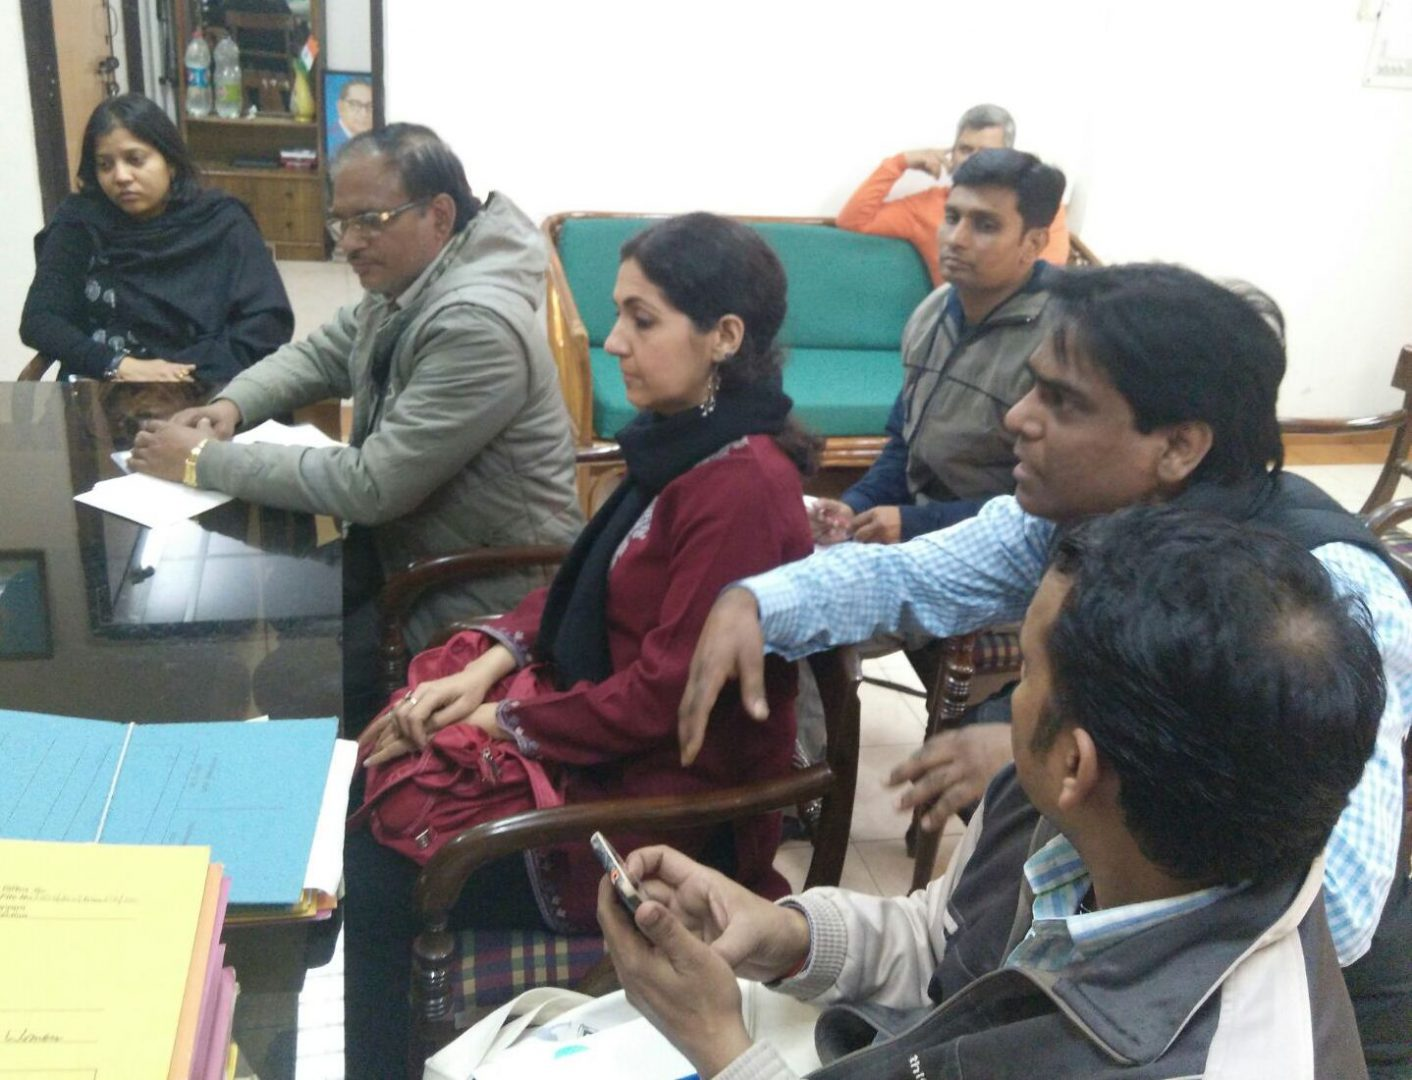 Meeting with DCW Official for Rehabilitation of Urban Homeless